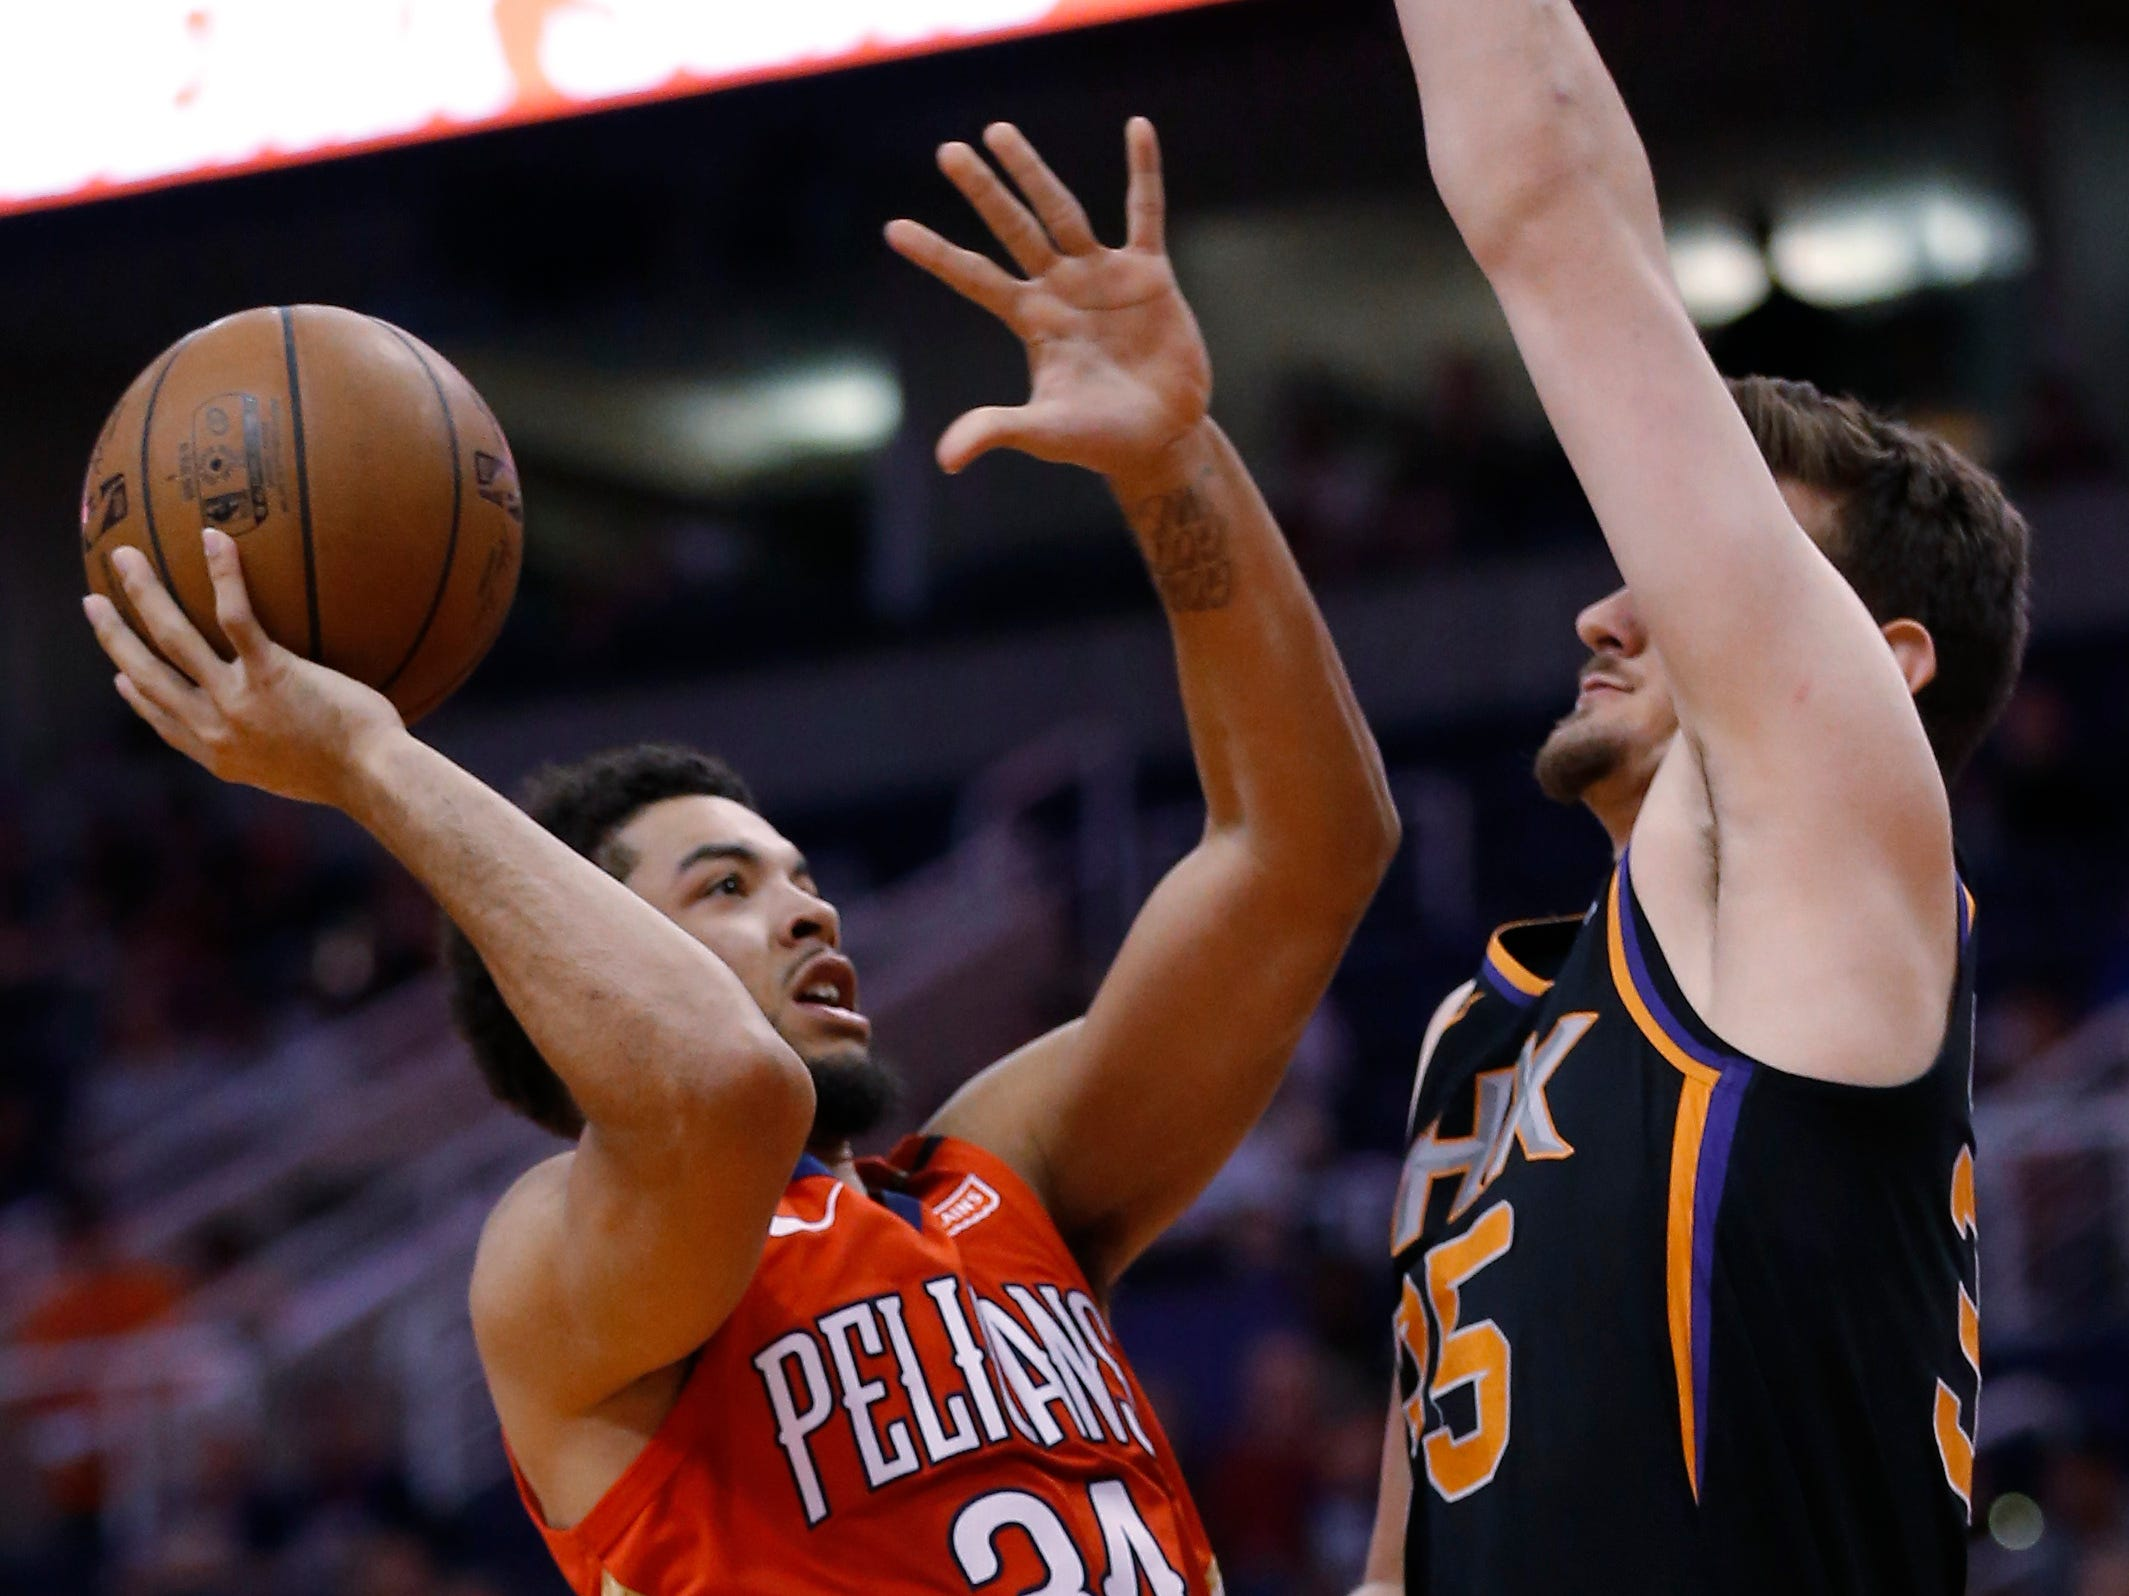 New Orleans Pelicans guard Kenrich Williams (34) drives on Phoenix Suns forward Dragan Bender during the first half of an NBA basketball game Friday, April 5, 2019, in Phoenix. (AP Photo/Rick Scuteri)